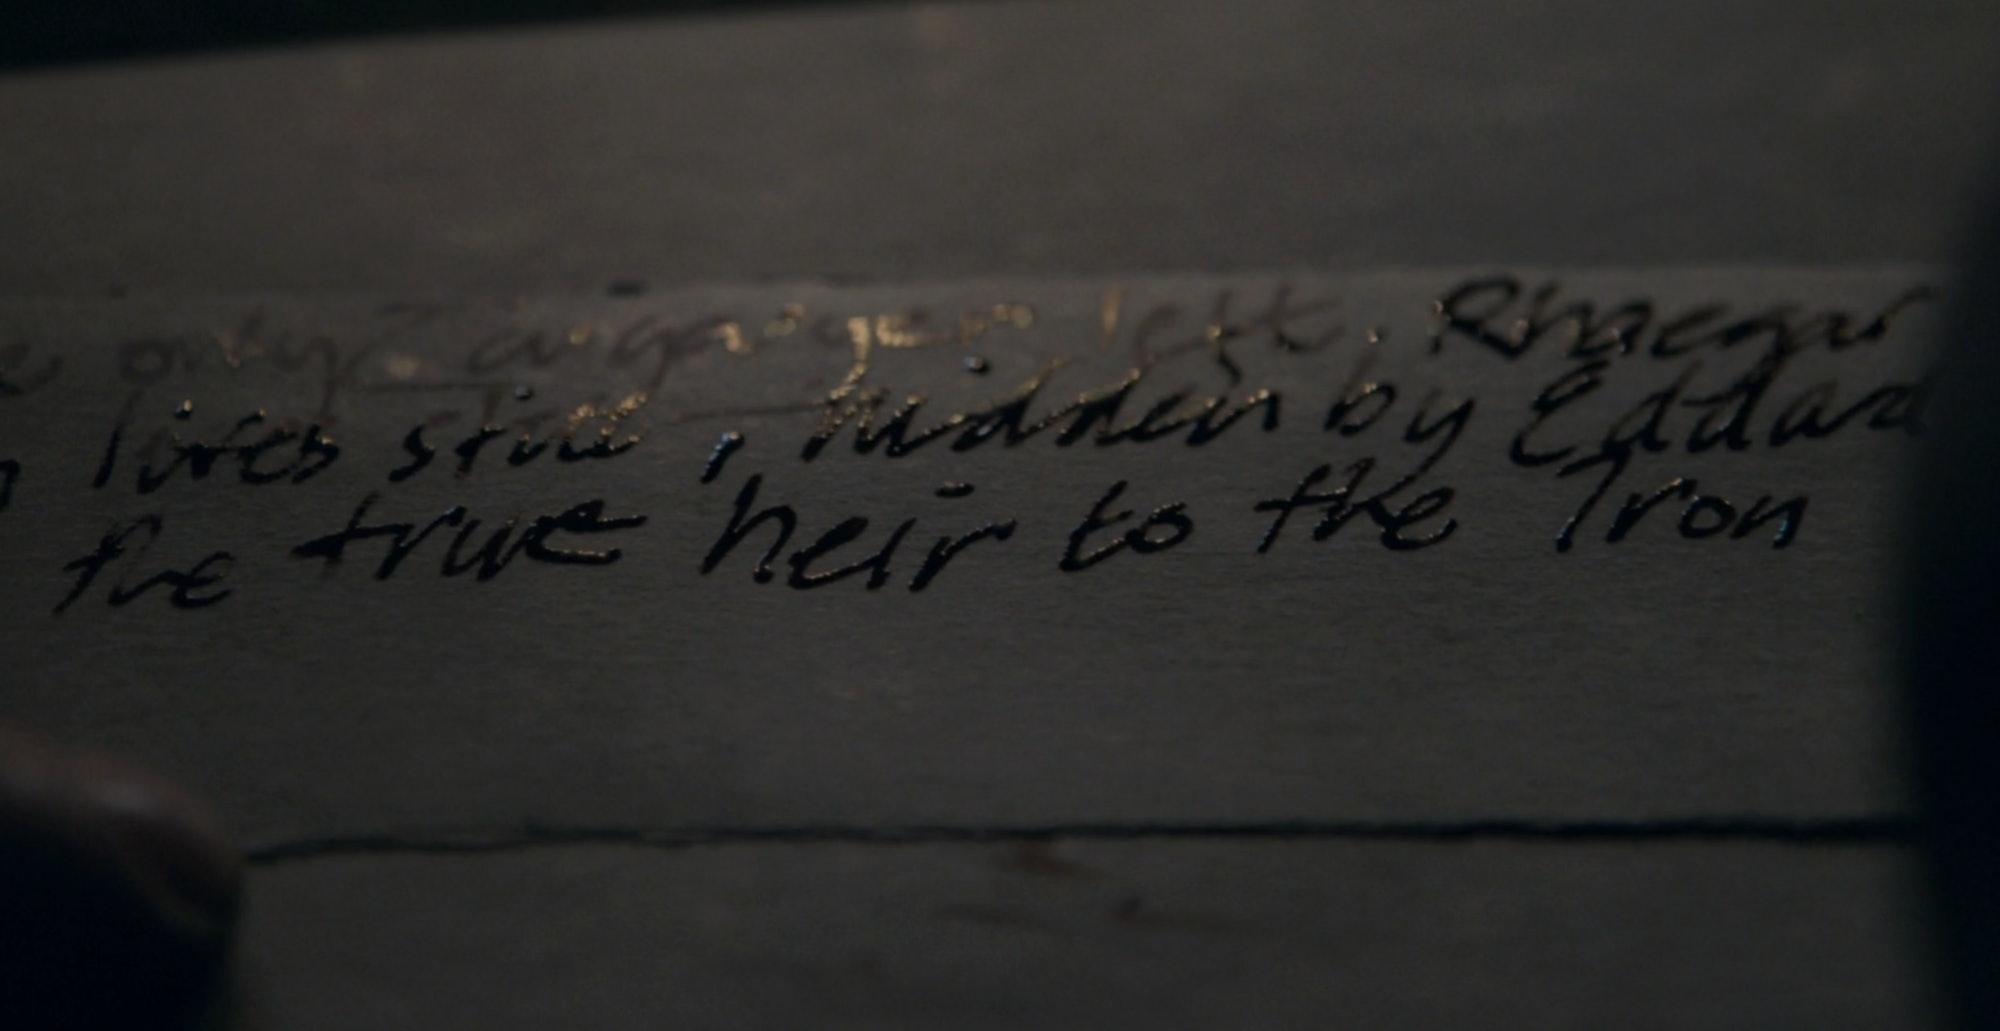 Secret scroll about Jon Snow's identity on Game of Thrones